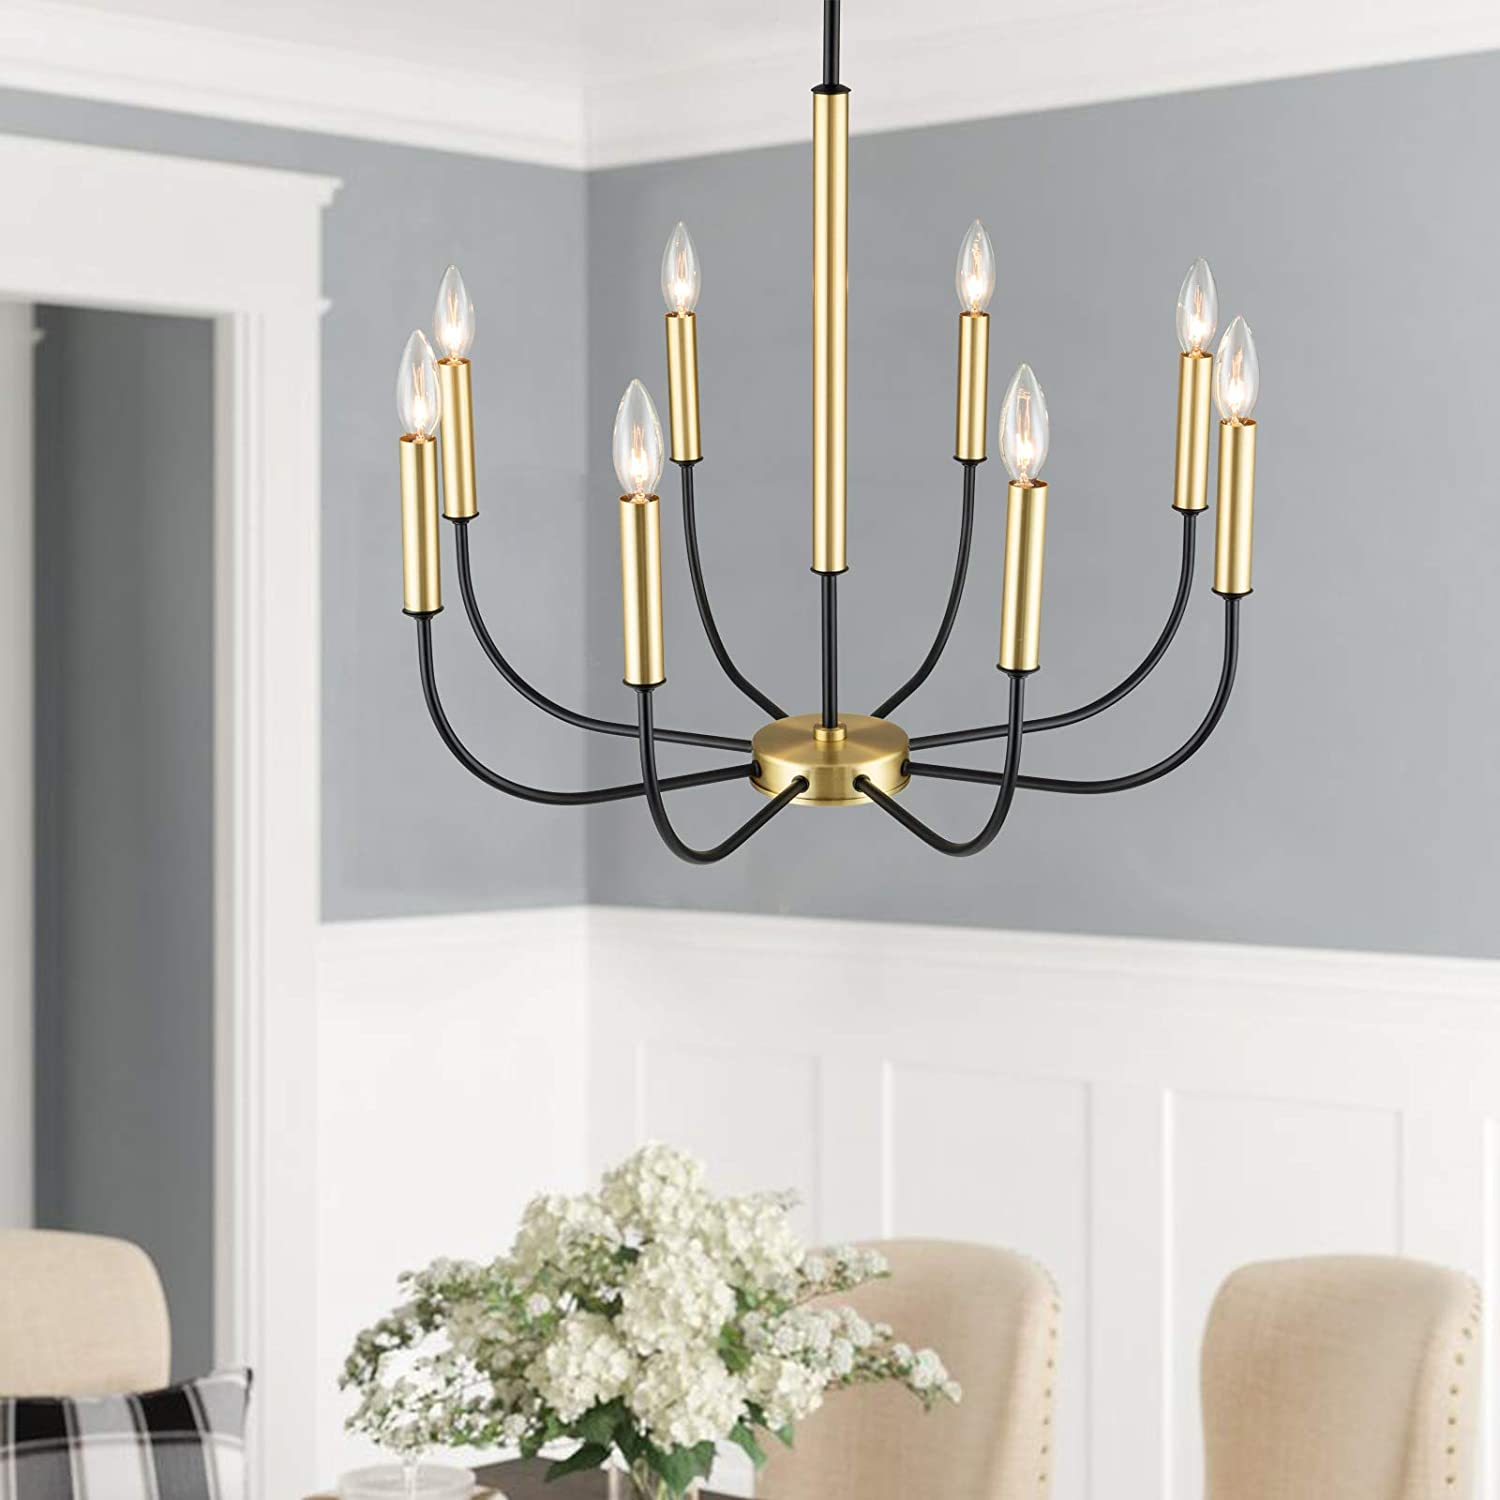 SOTTAE Modern 8-Light Candle Chandelier,Industrial Iron Black and Gold Chandelier Light Fixture,Farmhouse Pendant Chandelier Lighting for Dining Room Kitchen Foyer Bedroom 25.32